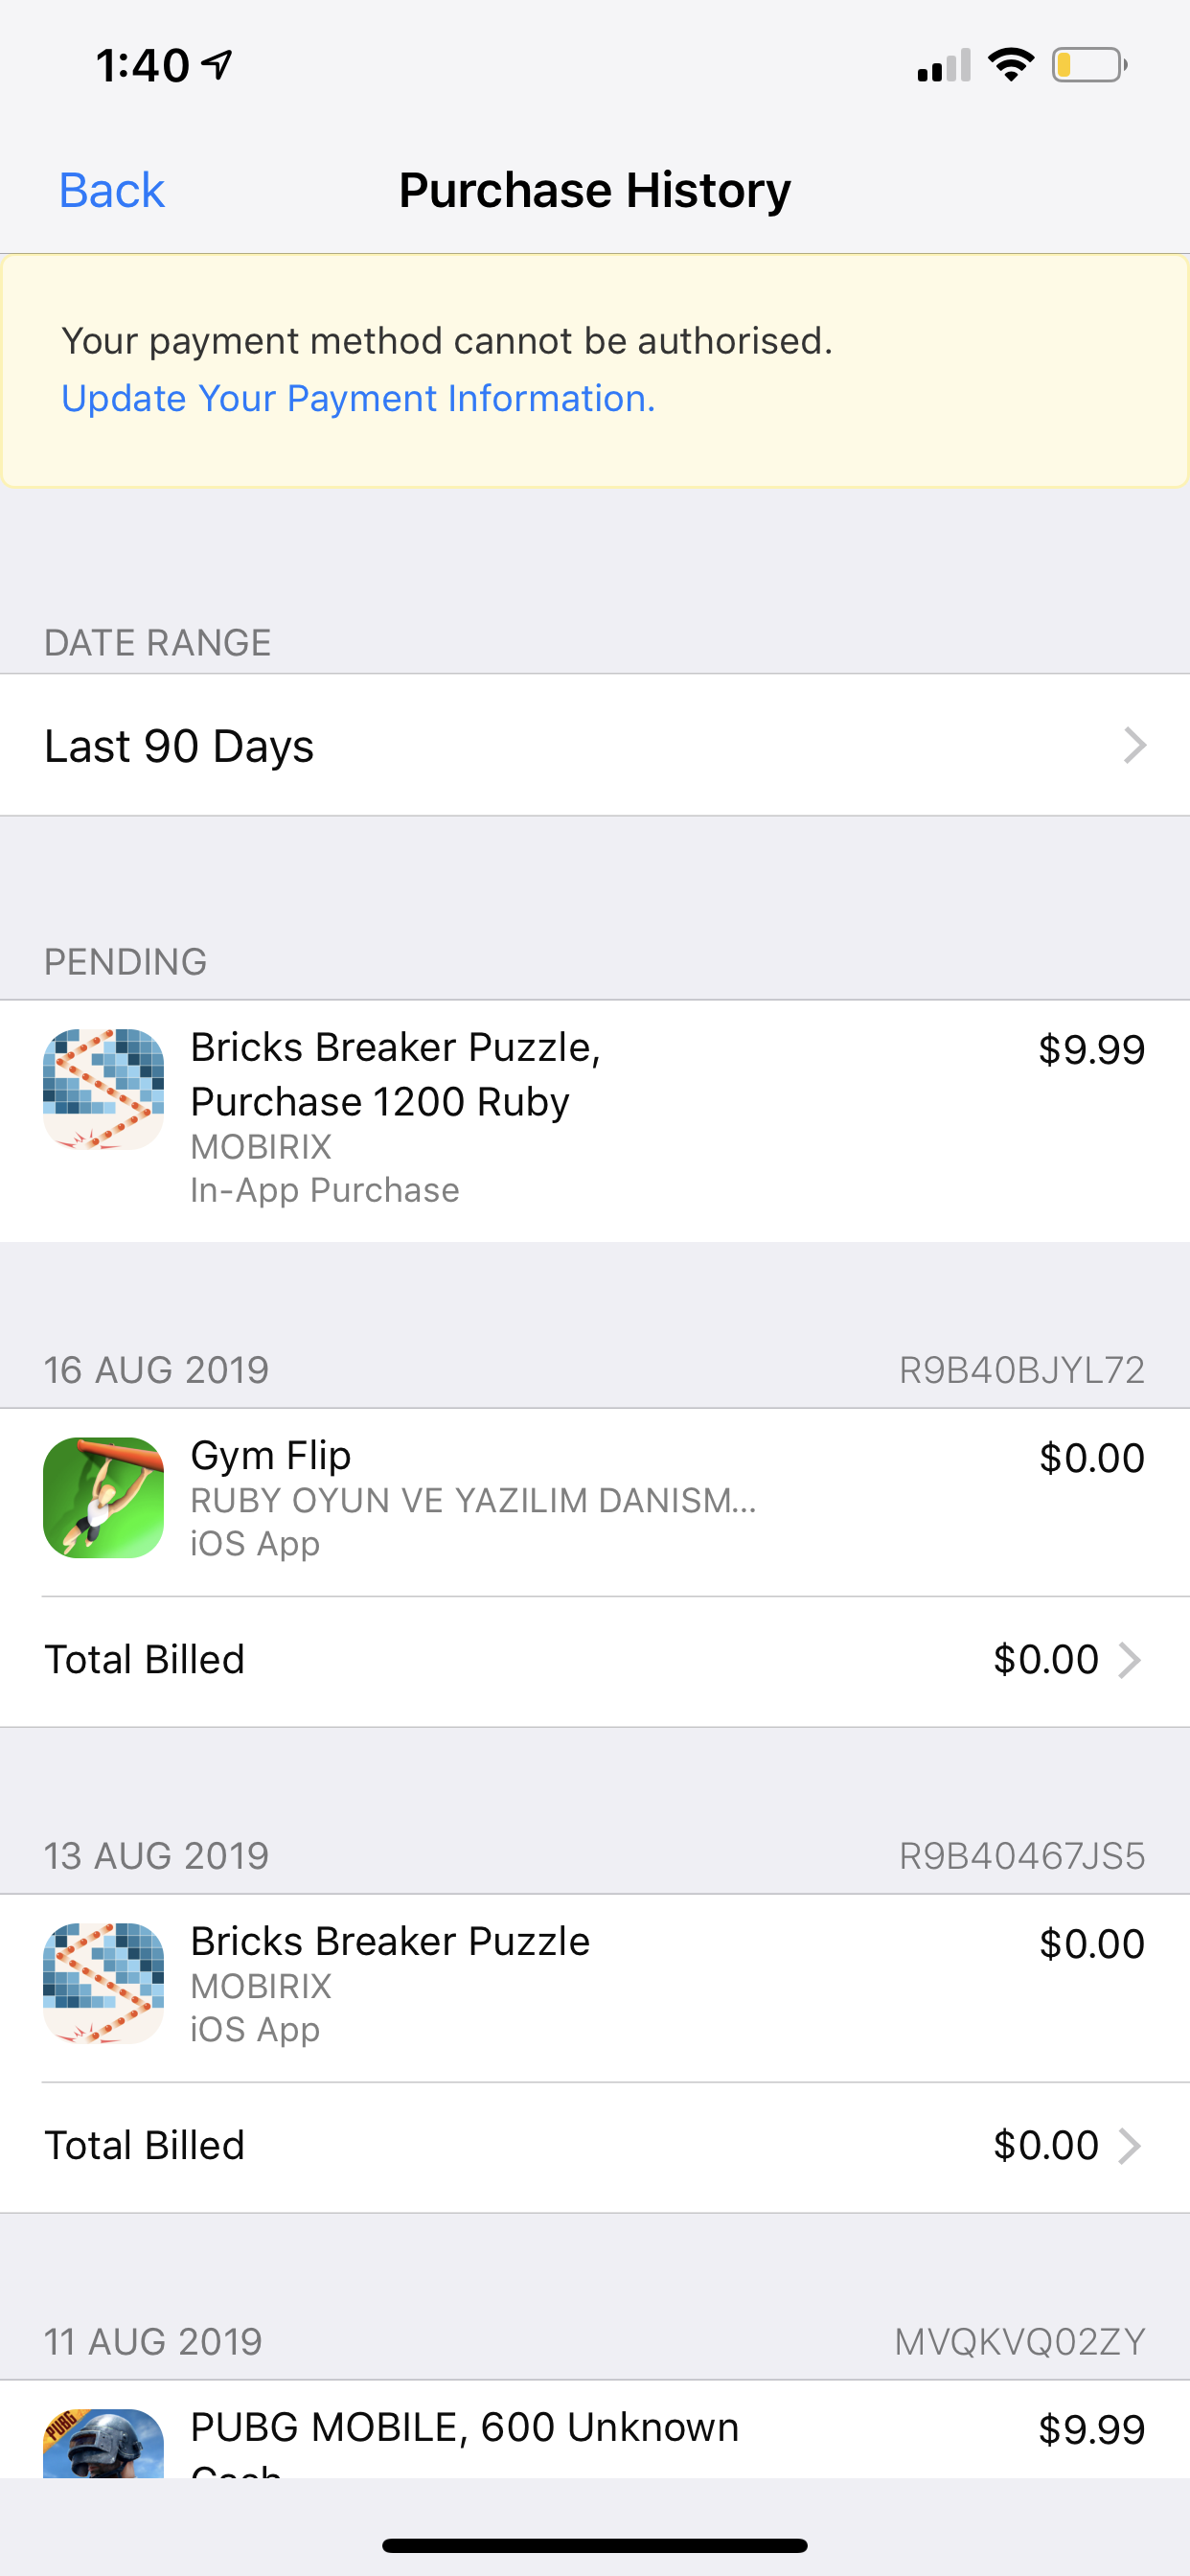 how can i cancel my pending purchase - Apple Community